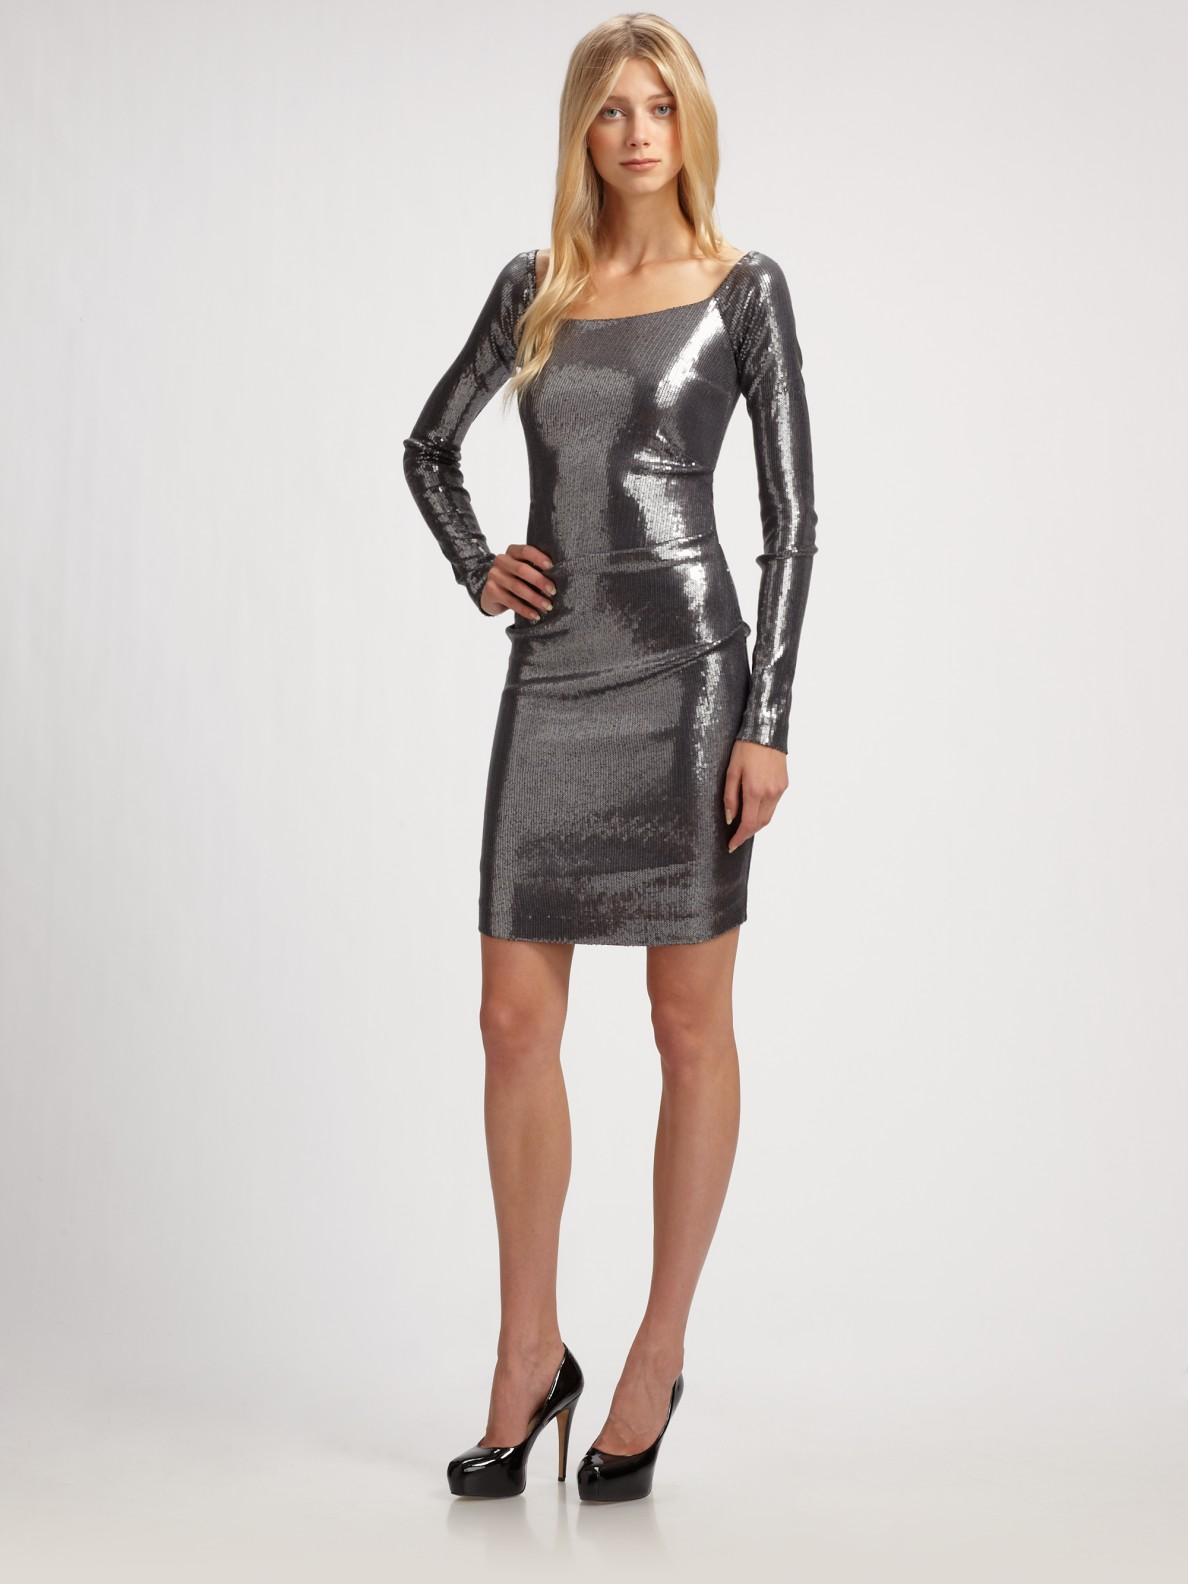 Lyst Nicole Miller Sequined Dress In Metallic